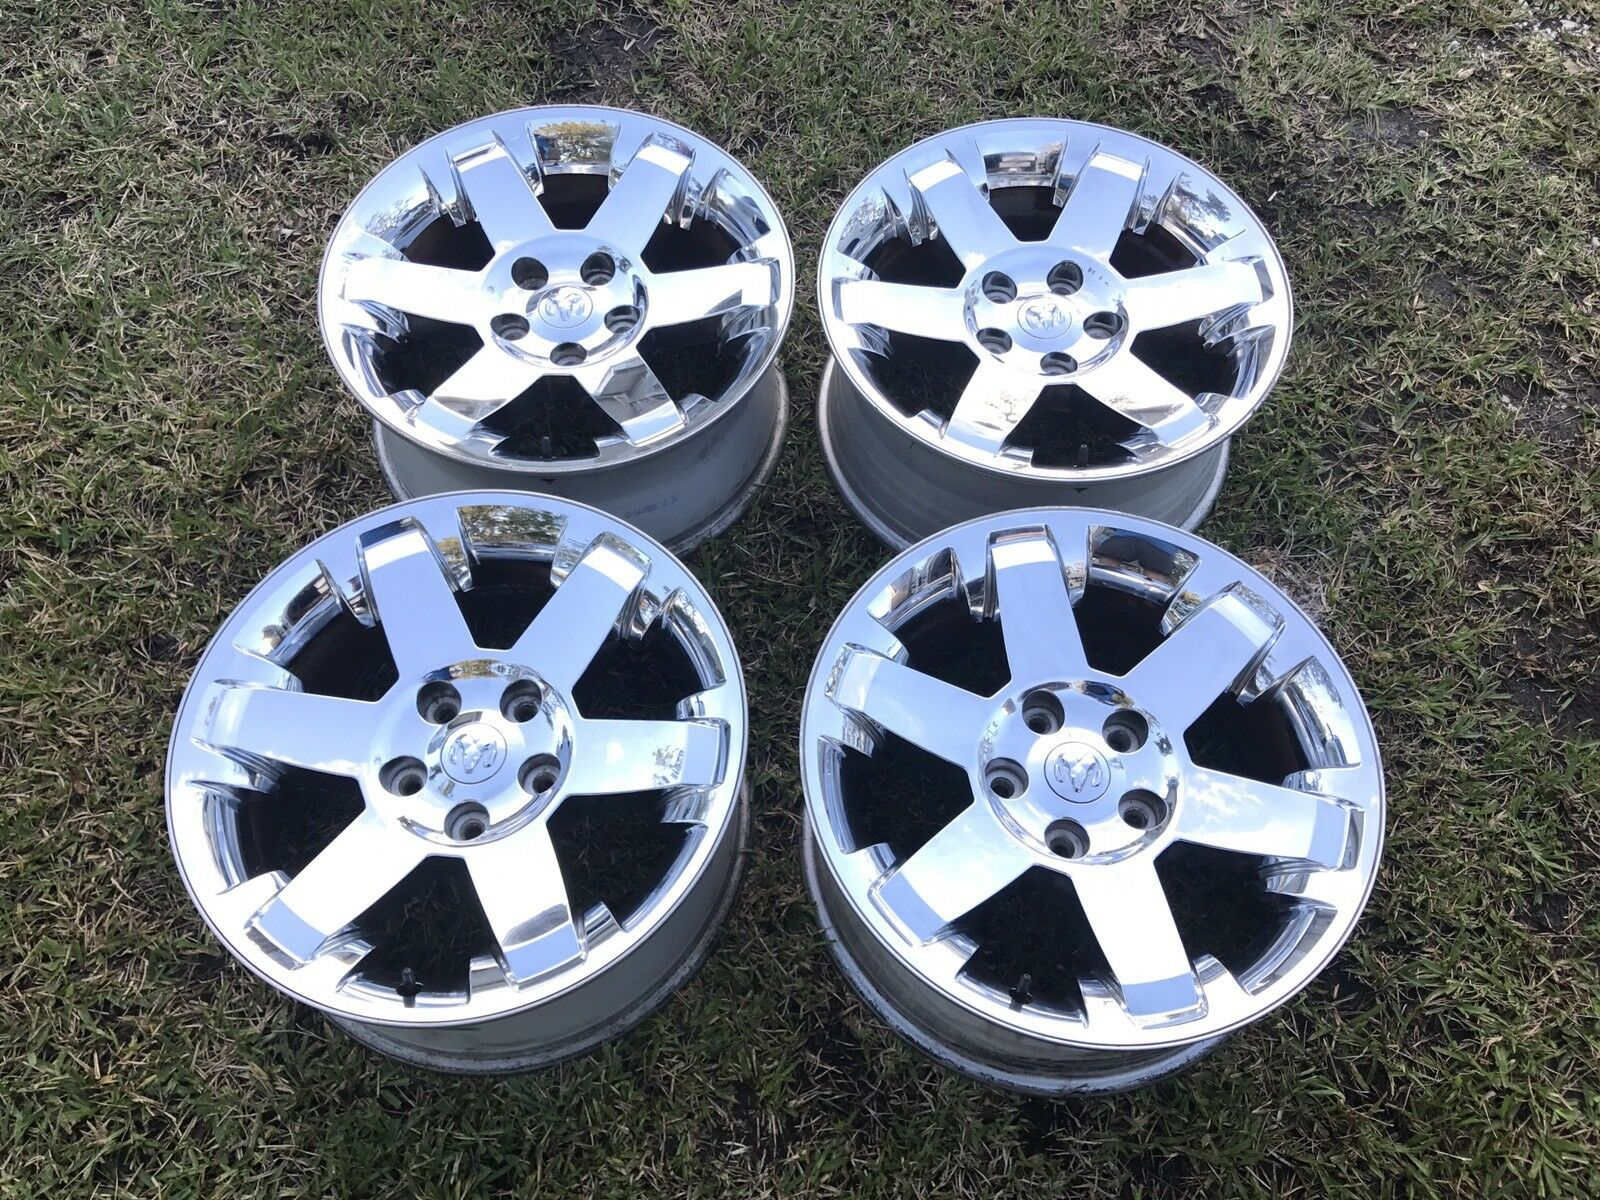 wheel articles it srt nittos second sticky mounted here are rims on wheels inch hole shot rod holeshot black lightweight detail dodge hot demon the s every